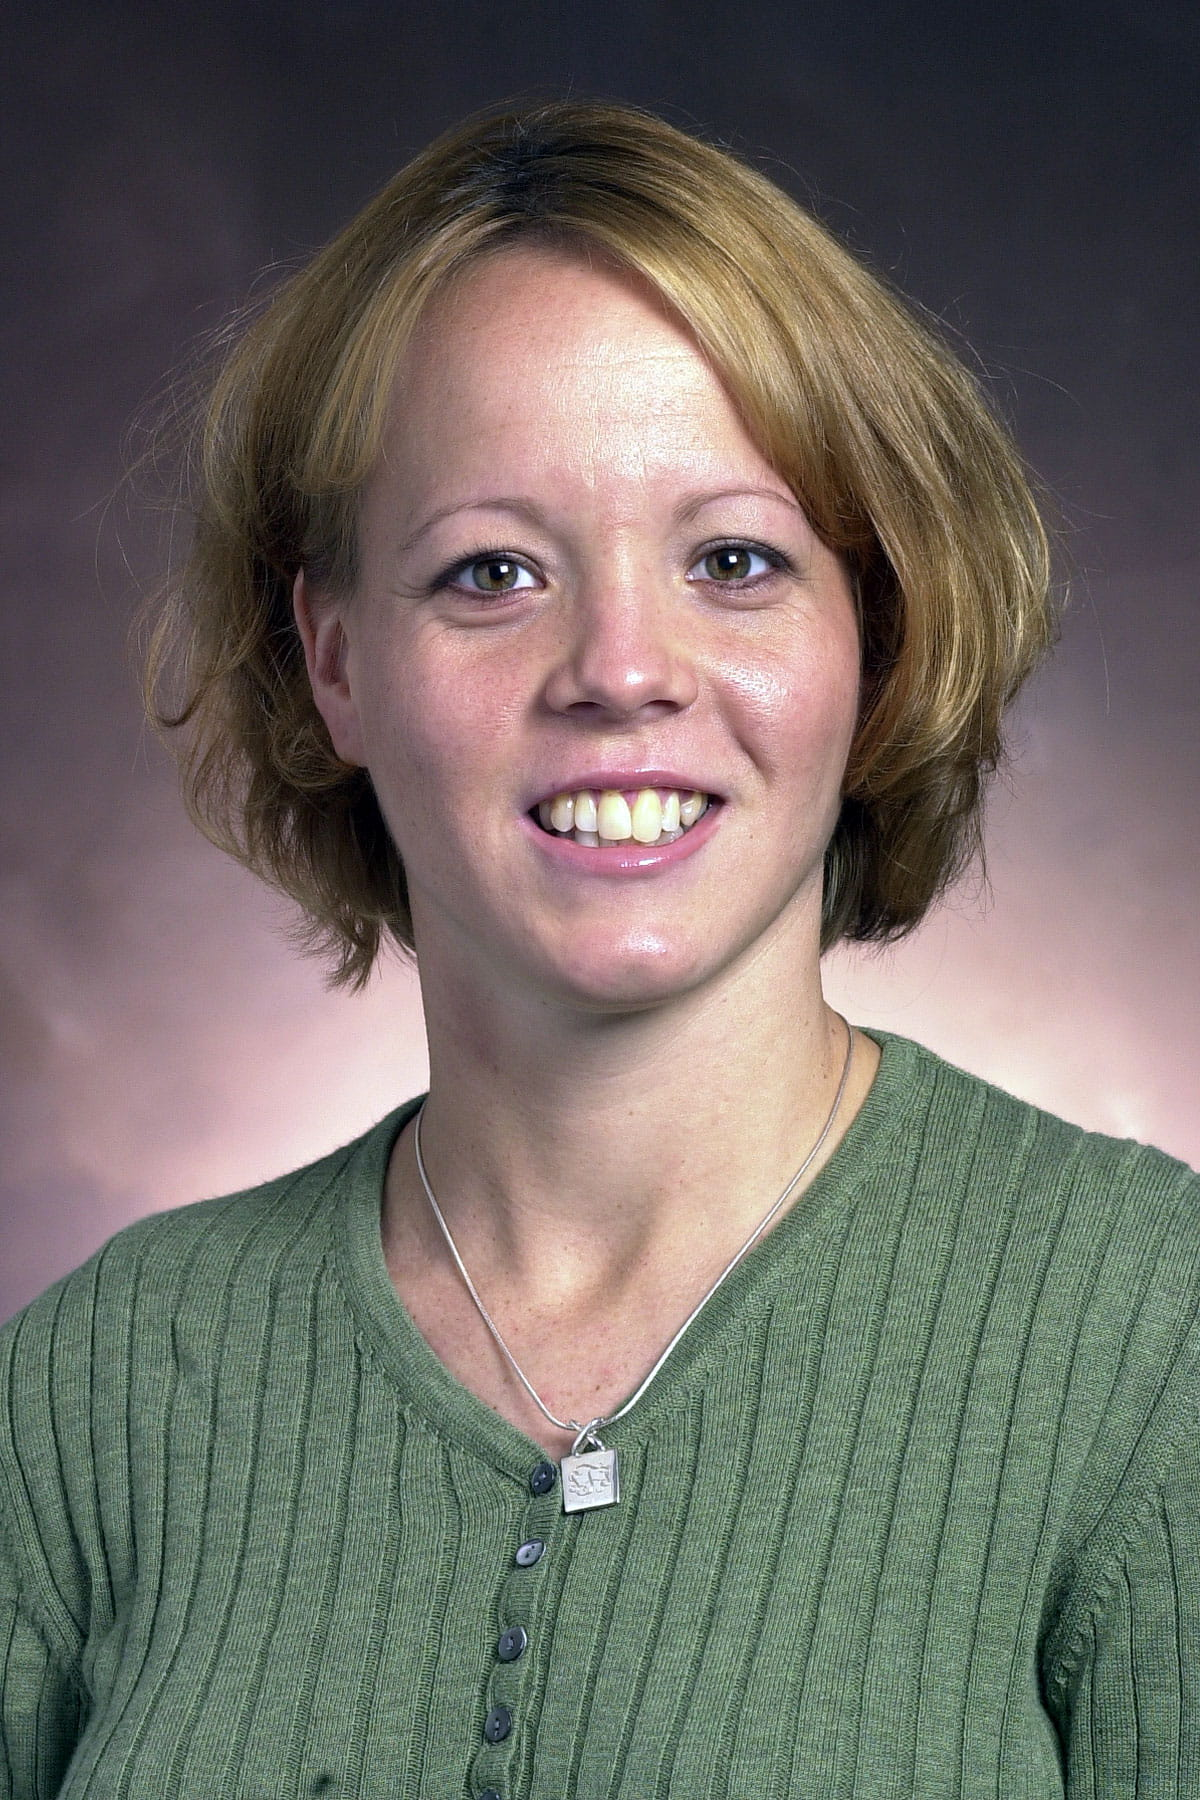 A photo of Stephanie Thaman.